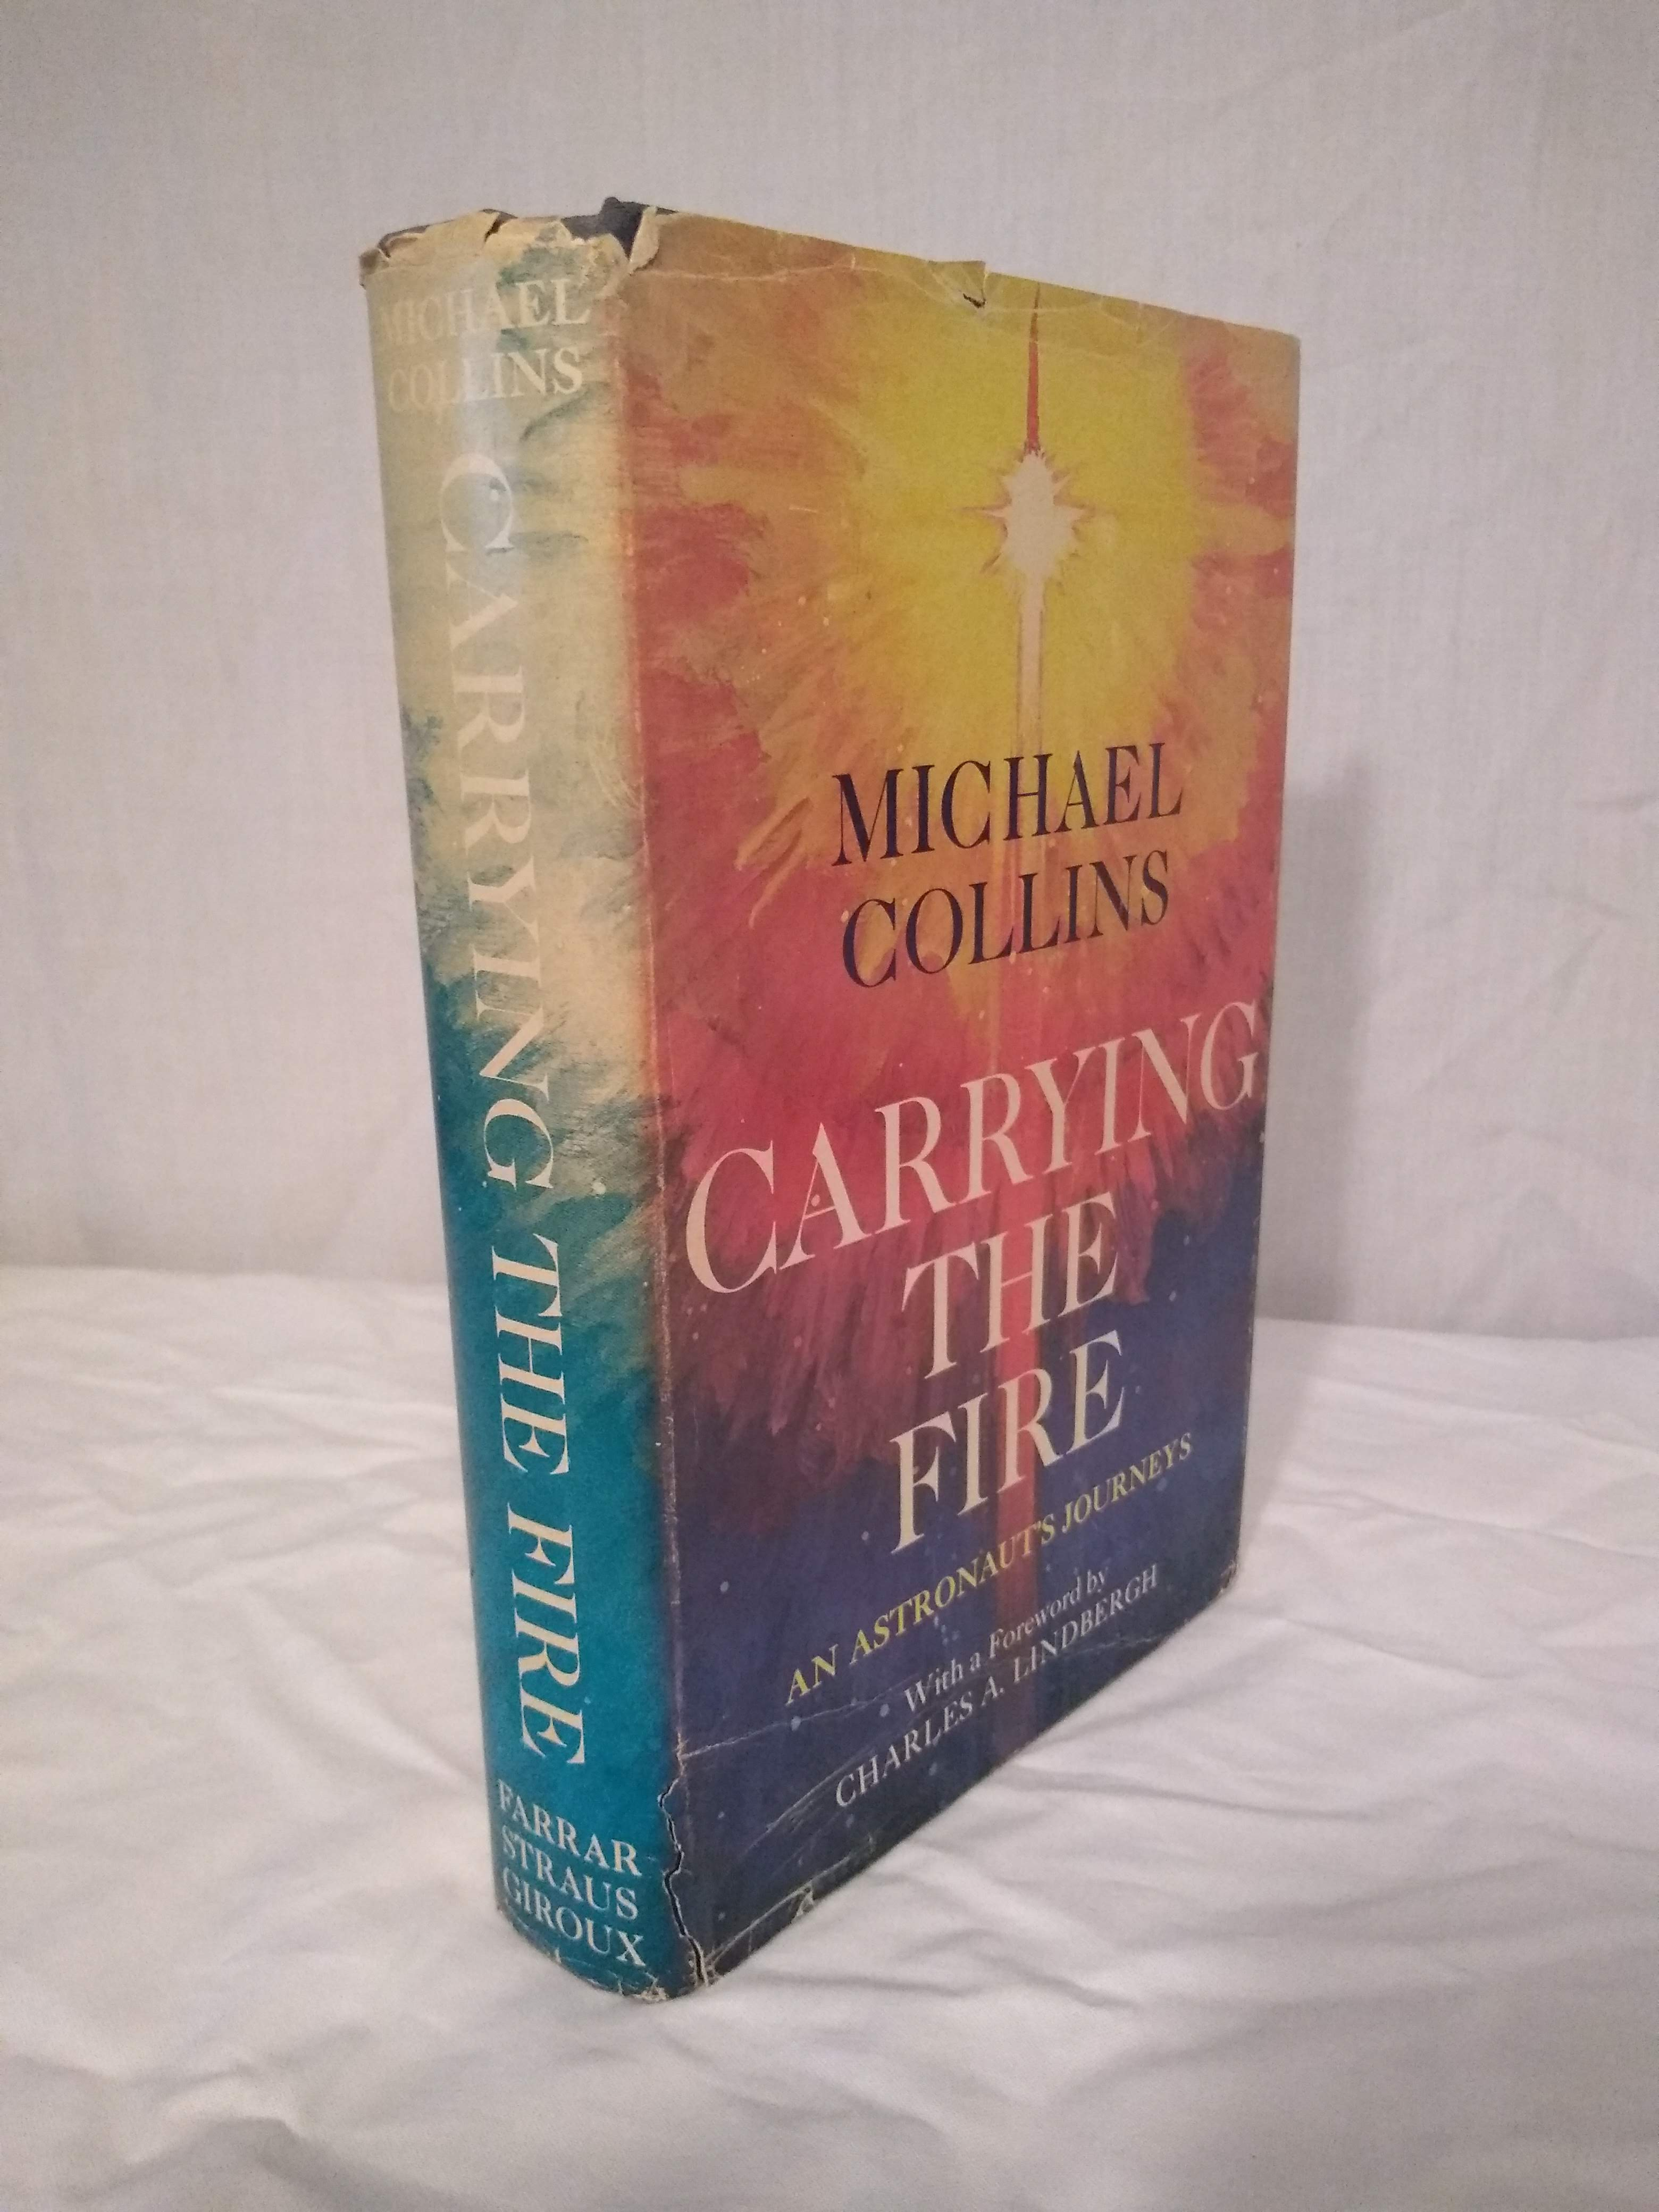 Carrying the Fire, Michael Collins